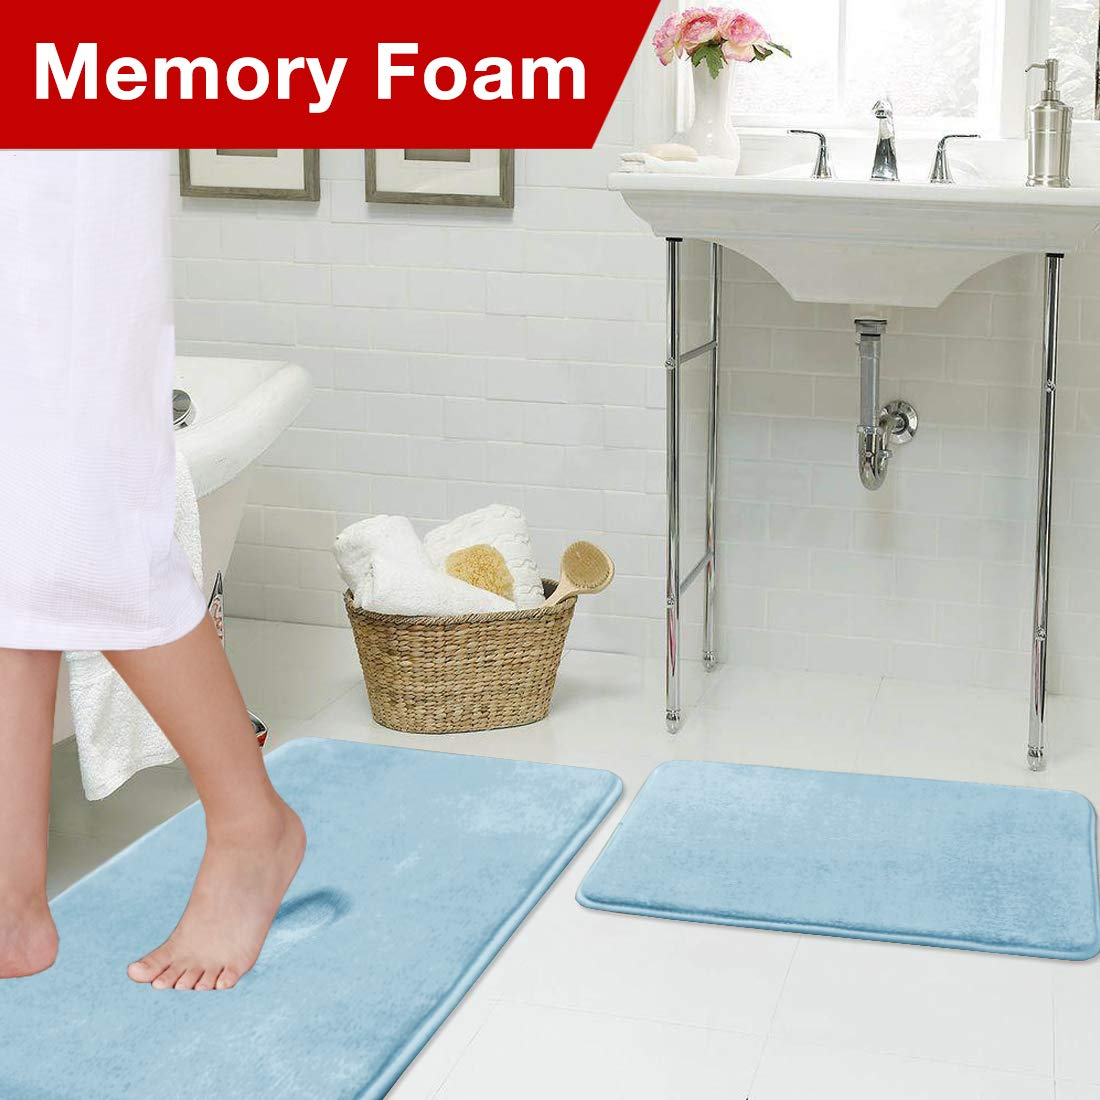 Memory Foam Bathroom Rug Set Ultra Soft Flannel Floor Mats Tufted Bath Rug with Non-Slip Backing Microfiber Door Mat for Kitchen/Entryway/Living Room (Pack 2-17'' x 24''/ 20'' x 32''- Sky Blue) by Flamingo P (Image #3)